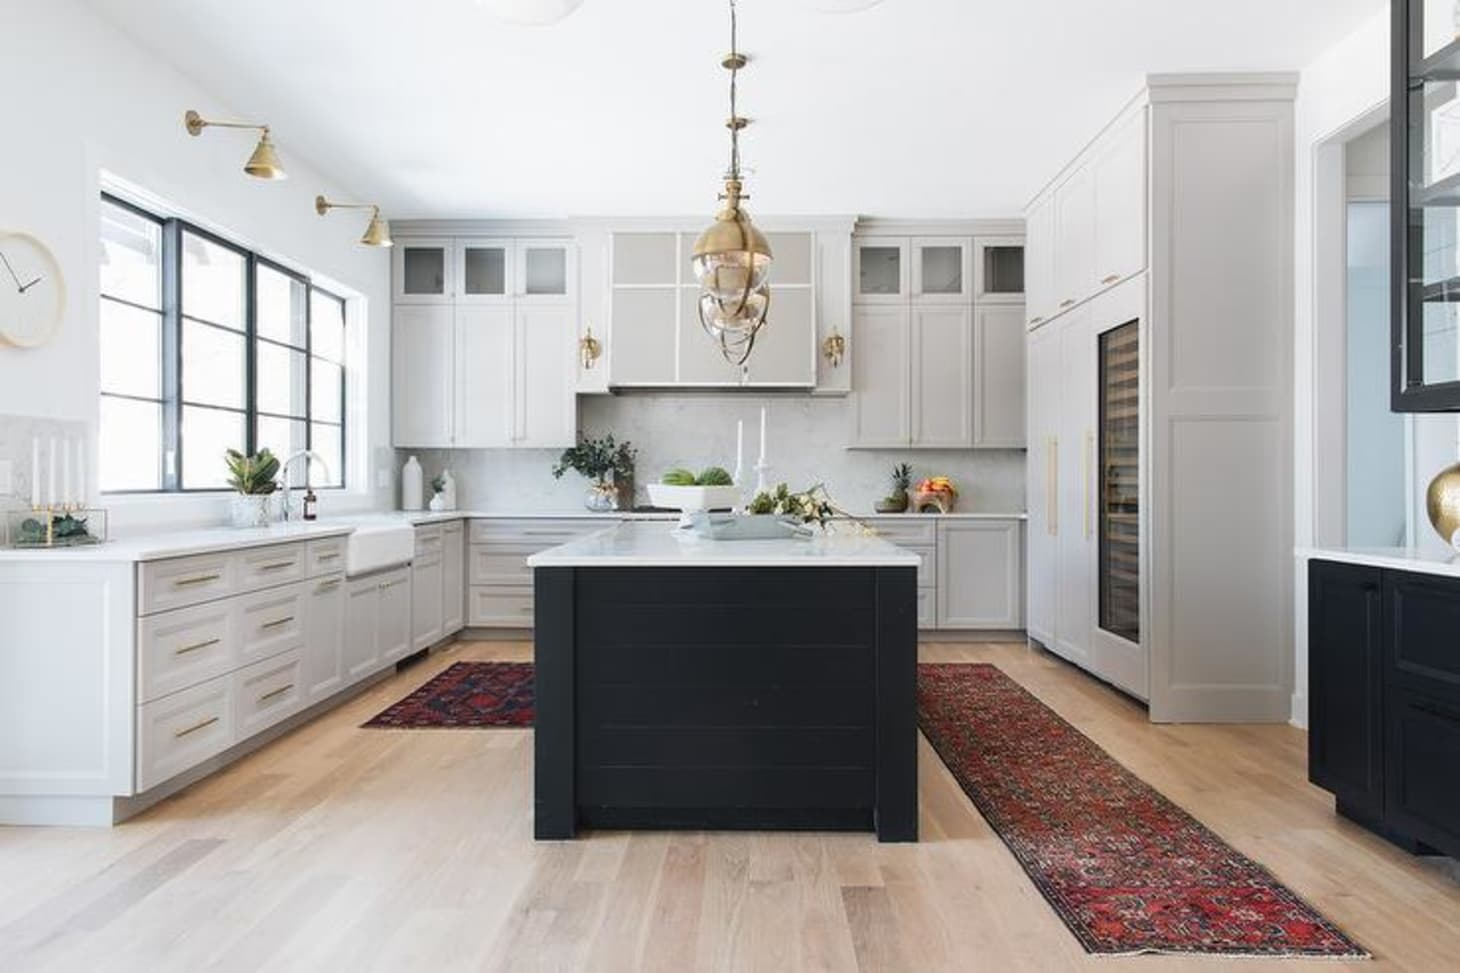 Super The Best Black Paint For Kitchen Cabinets Apartment Therapy Download Free Architecture Designs Scobabritishbridgeorg